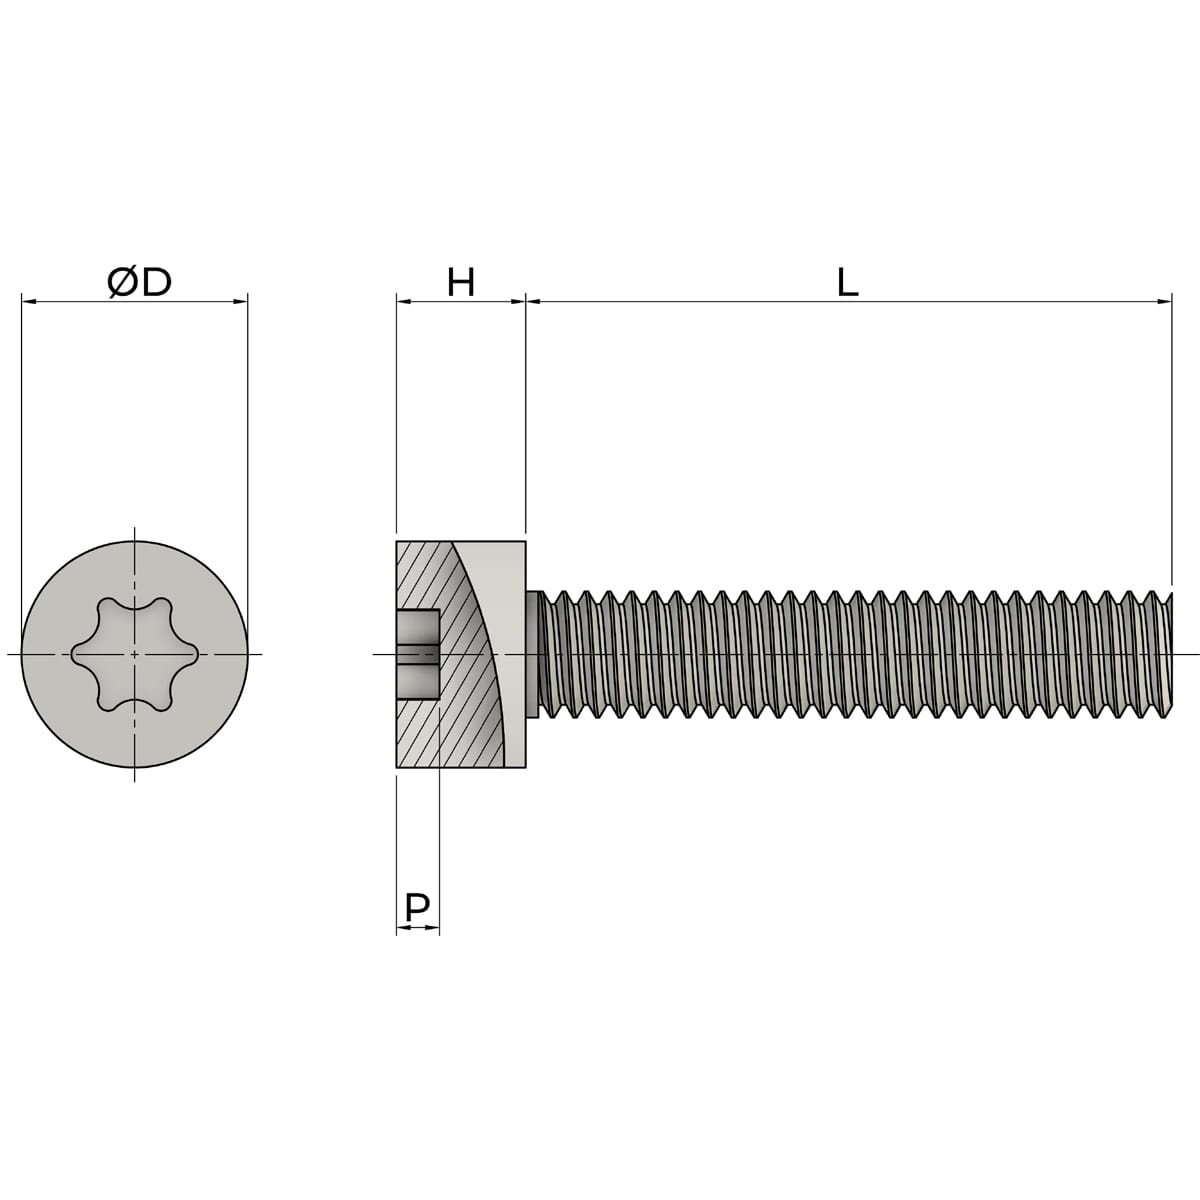 M3 x 30mm Torx Cap Head Screws (ISO 14579) - Marine Stainless Steel (A4) Drawing